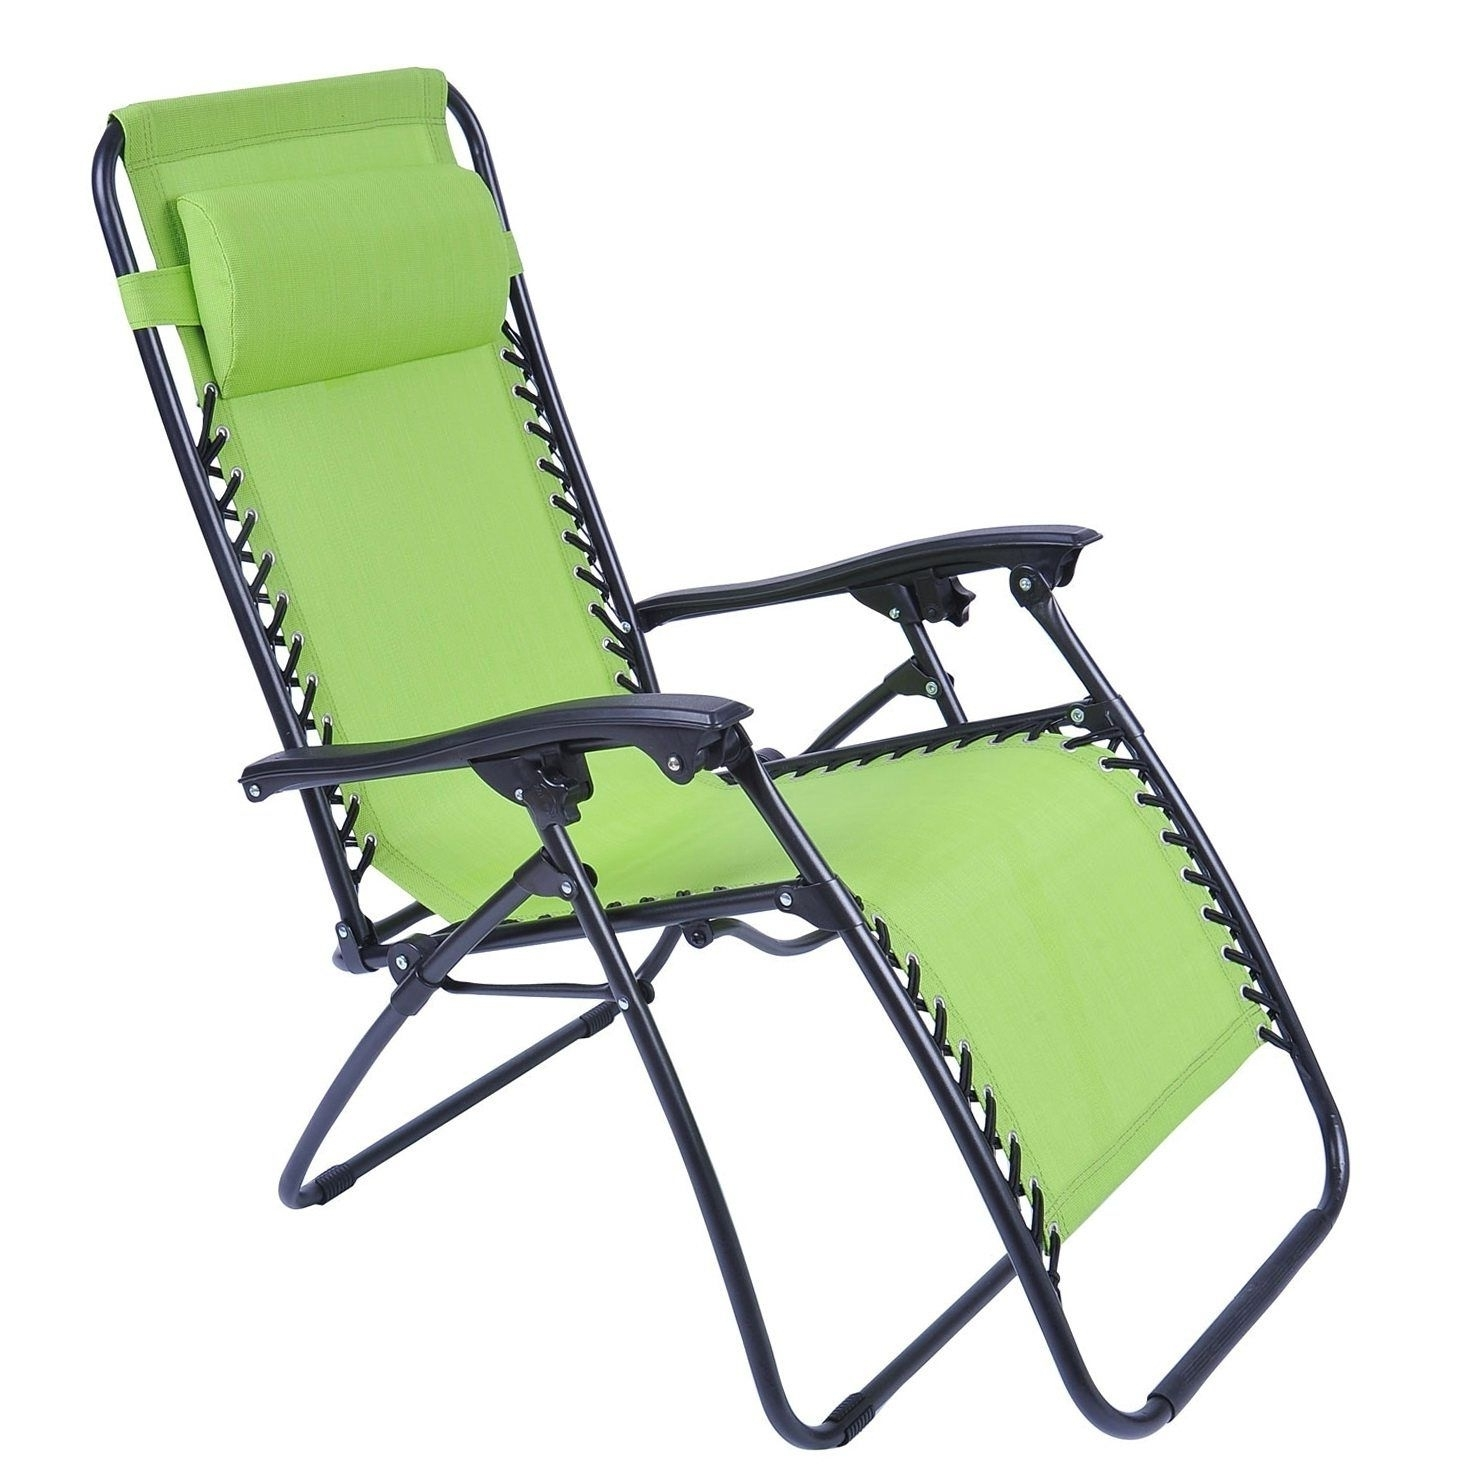 Newest Lightweight Chaise Lounge Chairs Inside Lounge Chair Outdoor Folding Folding Chaise Lounge Chair Patio (View 2 of 15)